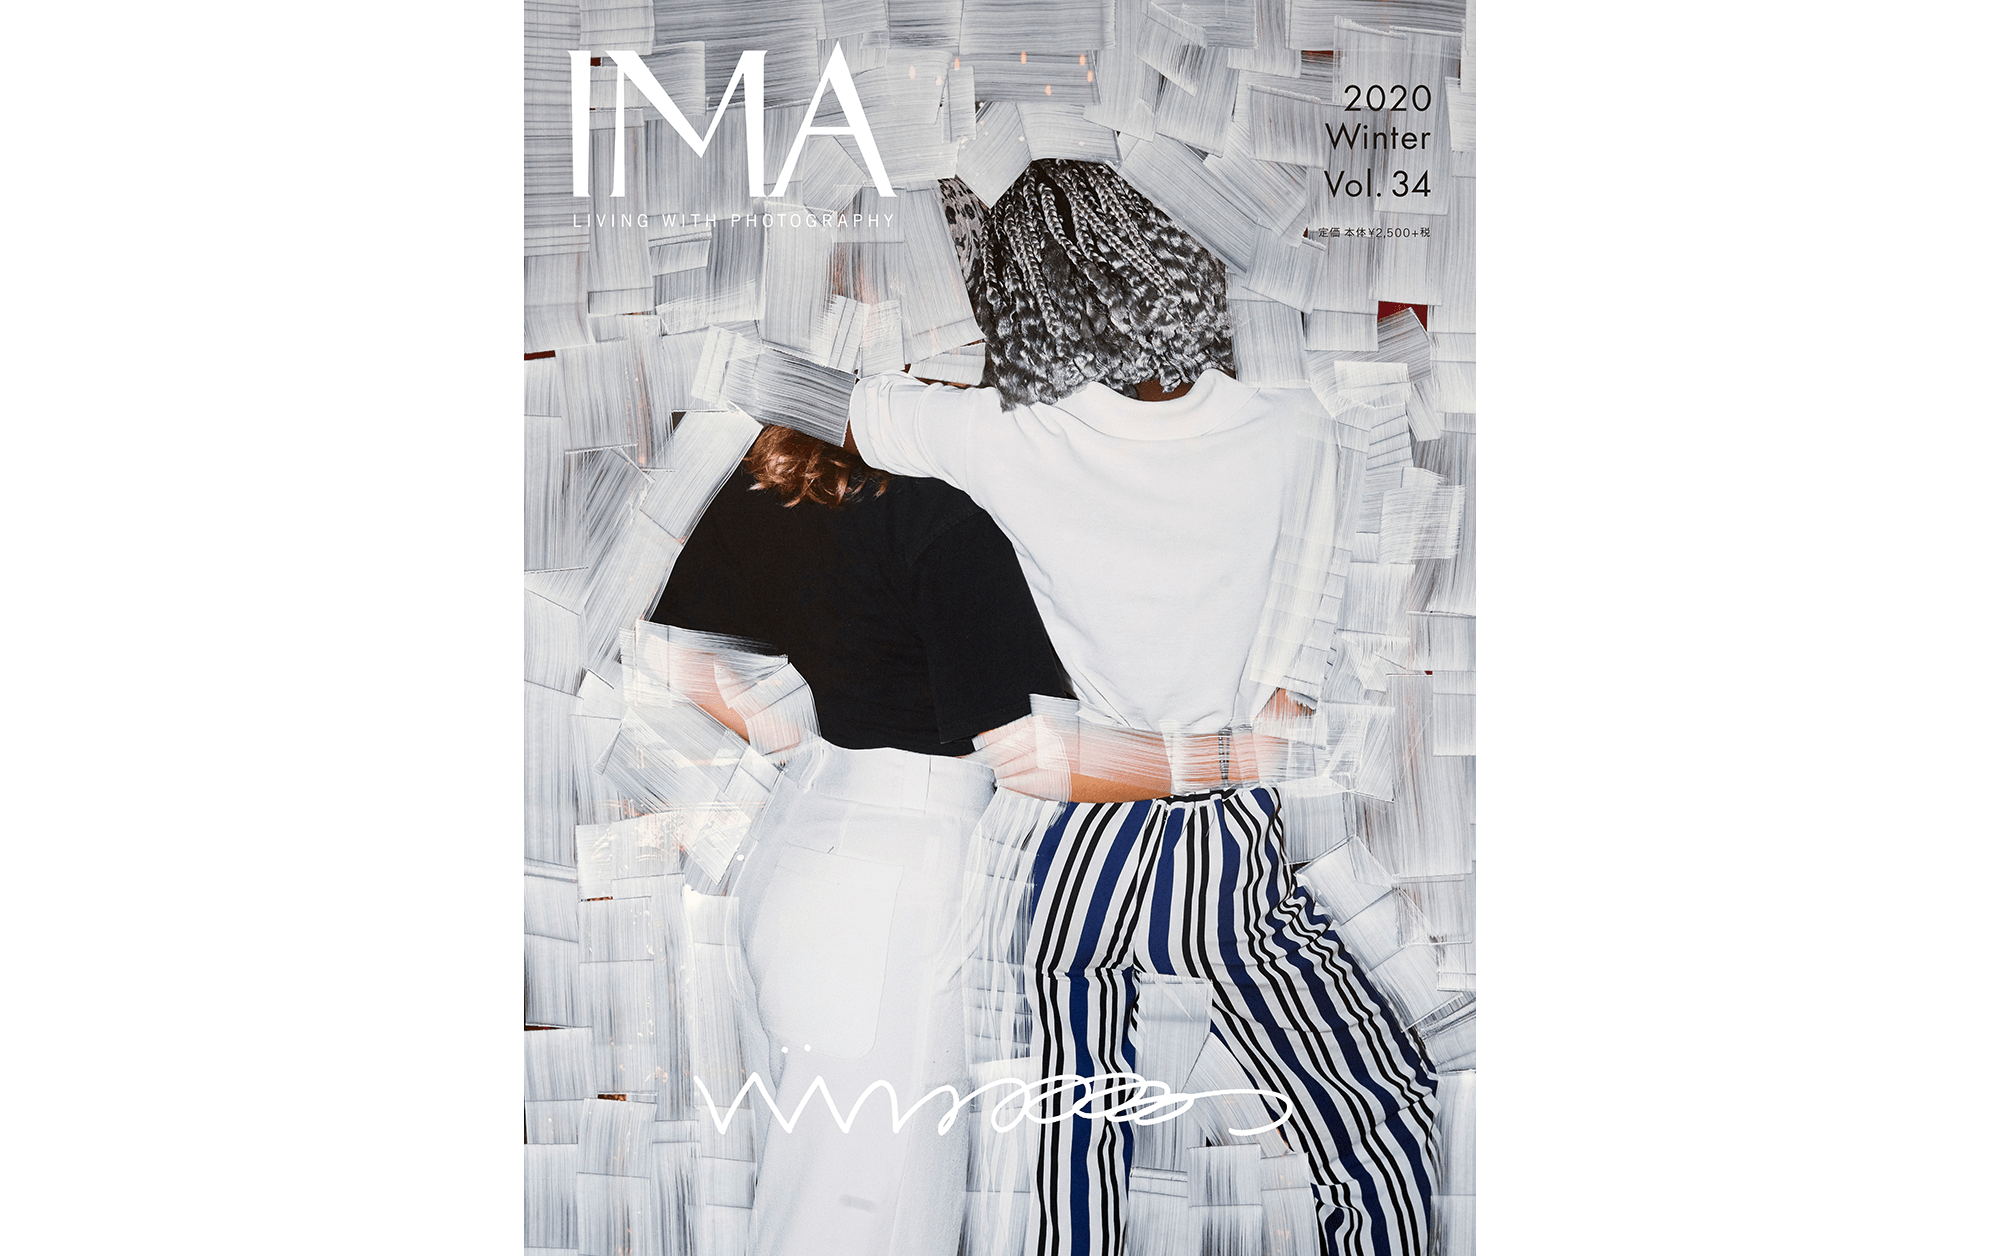 IMA 2020 Winter Vol.34